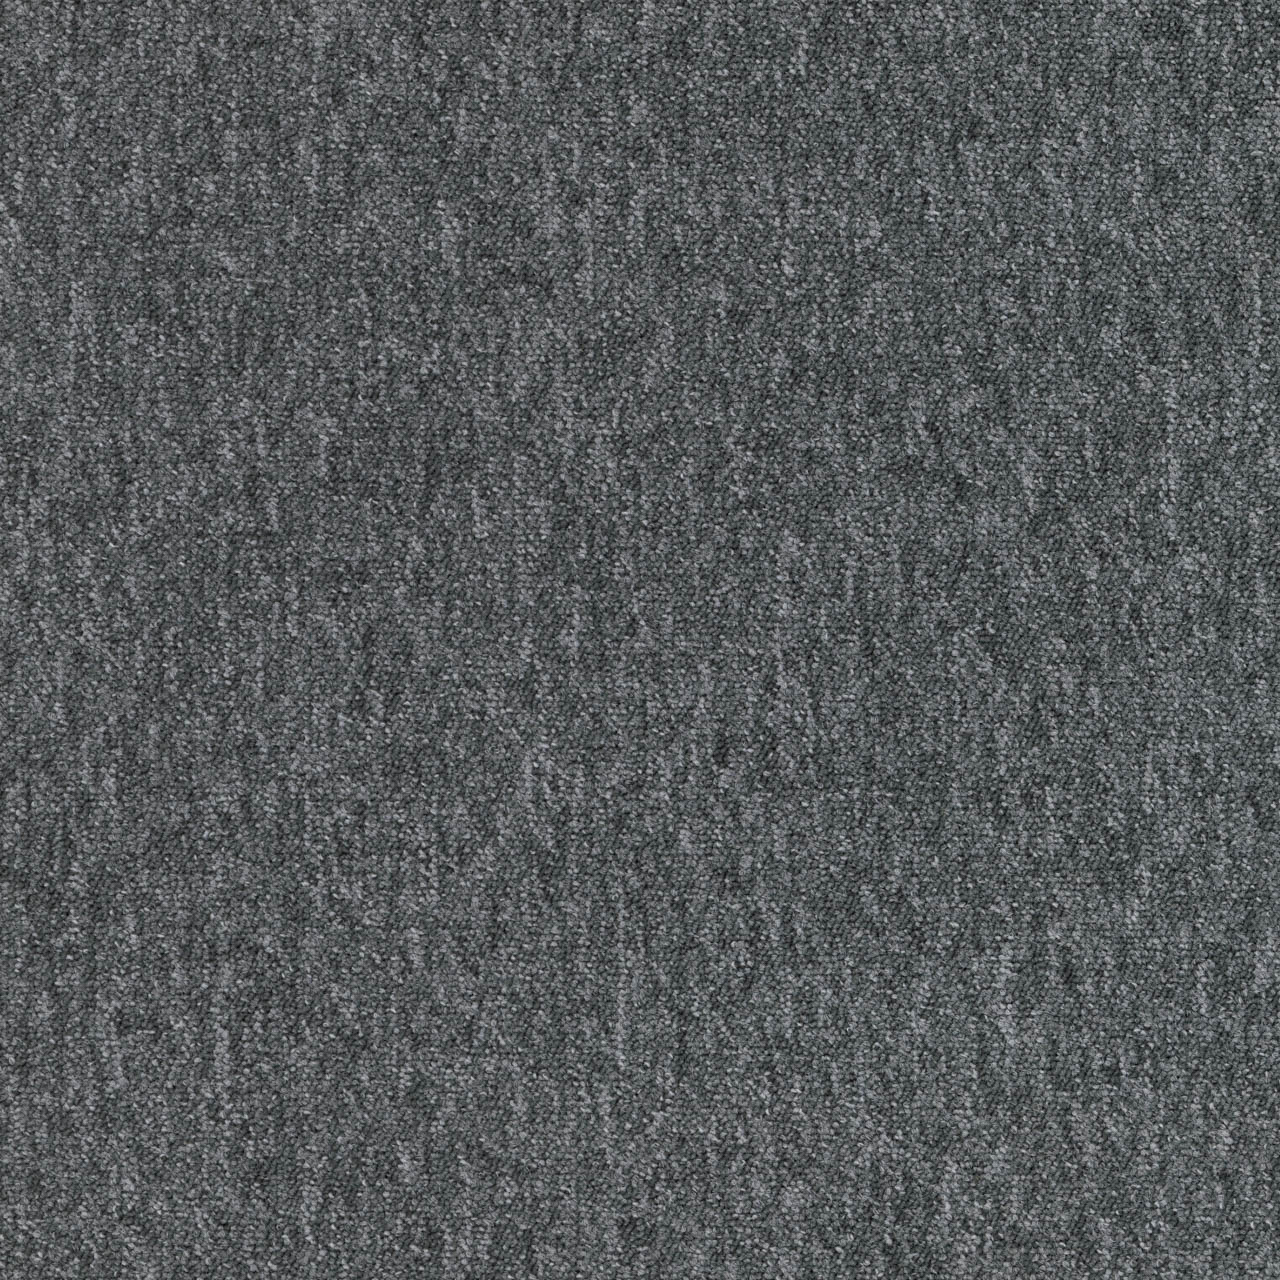 Amtico International: Foundry Dusk